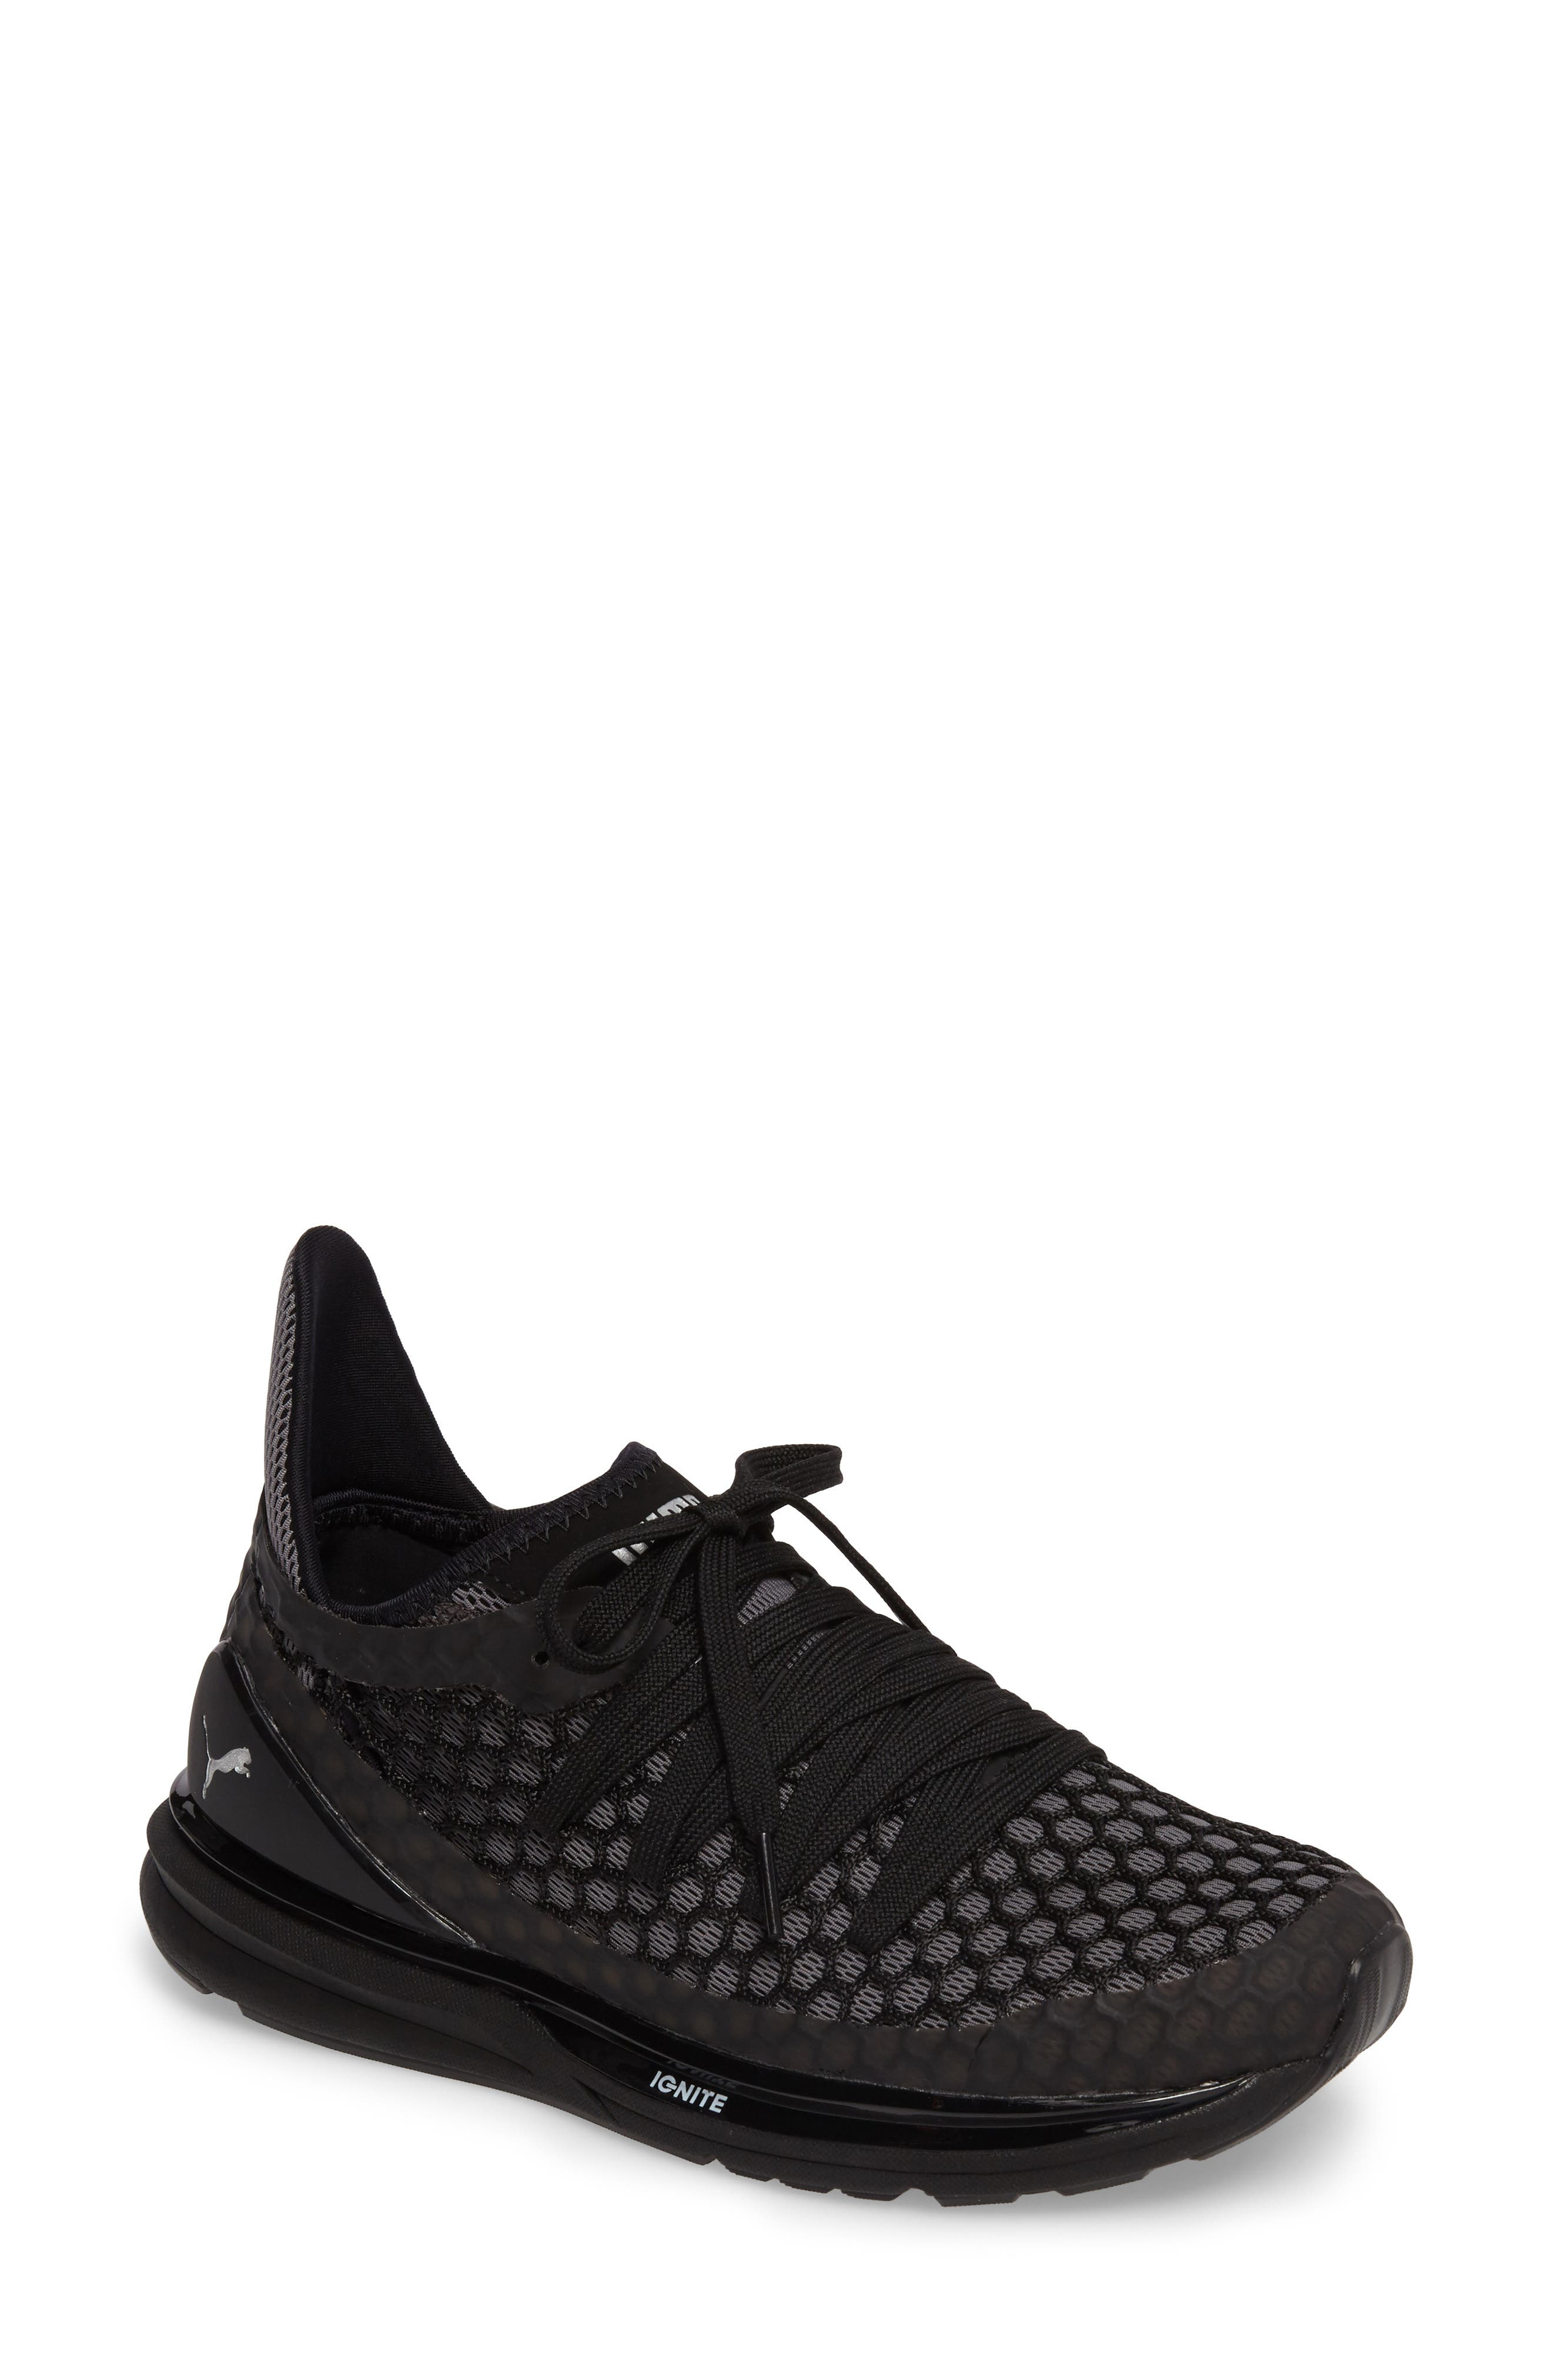 PUMA Ignite Limitless Netfit Running Shoe, Main, color, 001